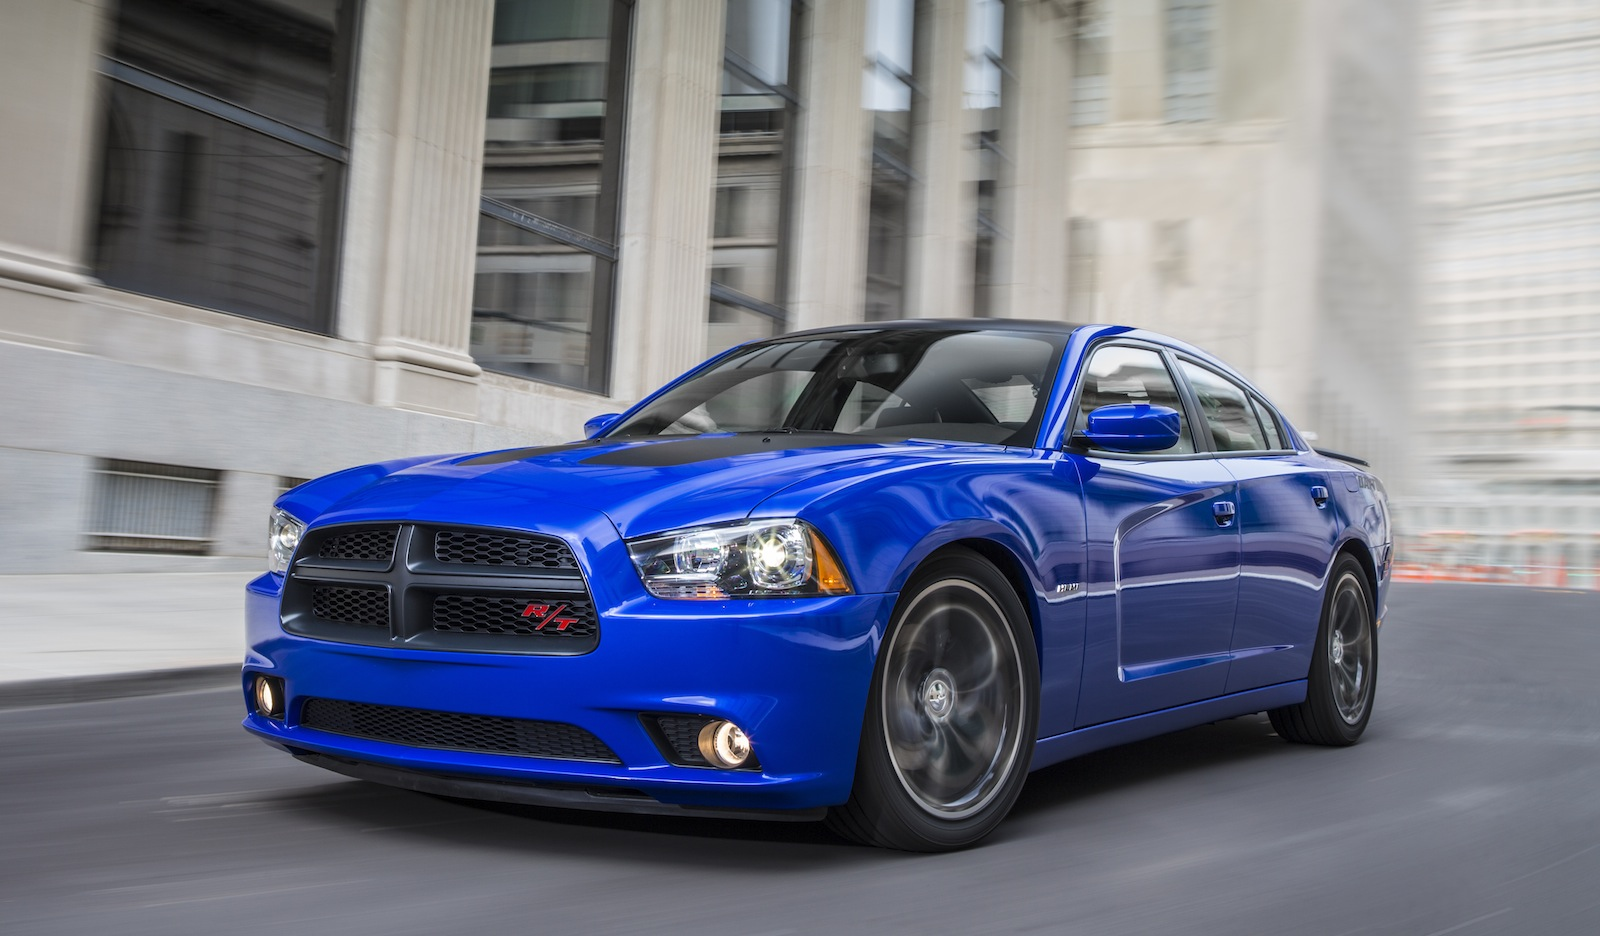 2018 Dodge Challenger >> Dodge Charger a chance for Australia in 2014 - Photos (1 ...